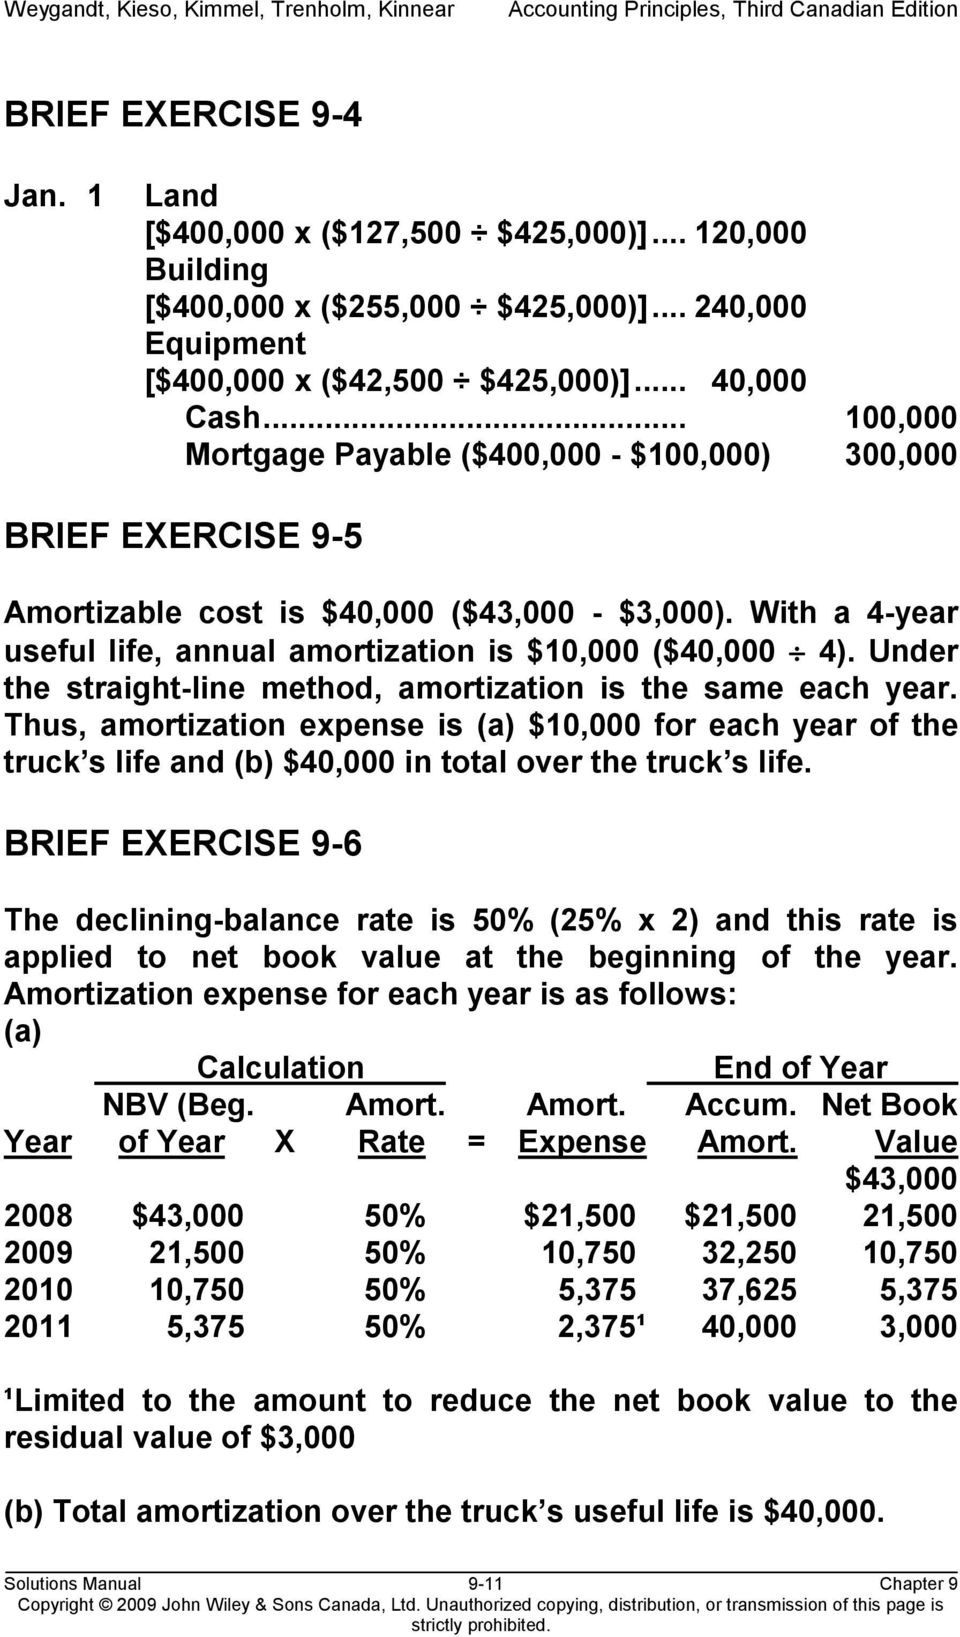 Under the straight-line method, amortization is the same each year. Thus, amortization expense is (a) $10,000 for each year of the truck s life and (b) $40,000 in total over the truck s life.